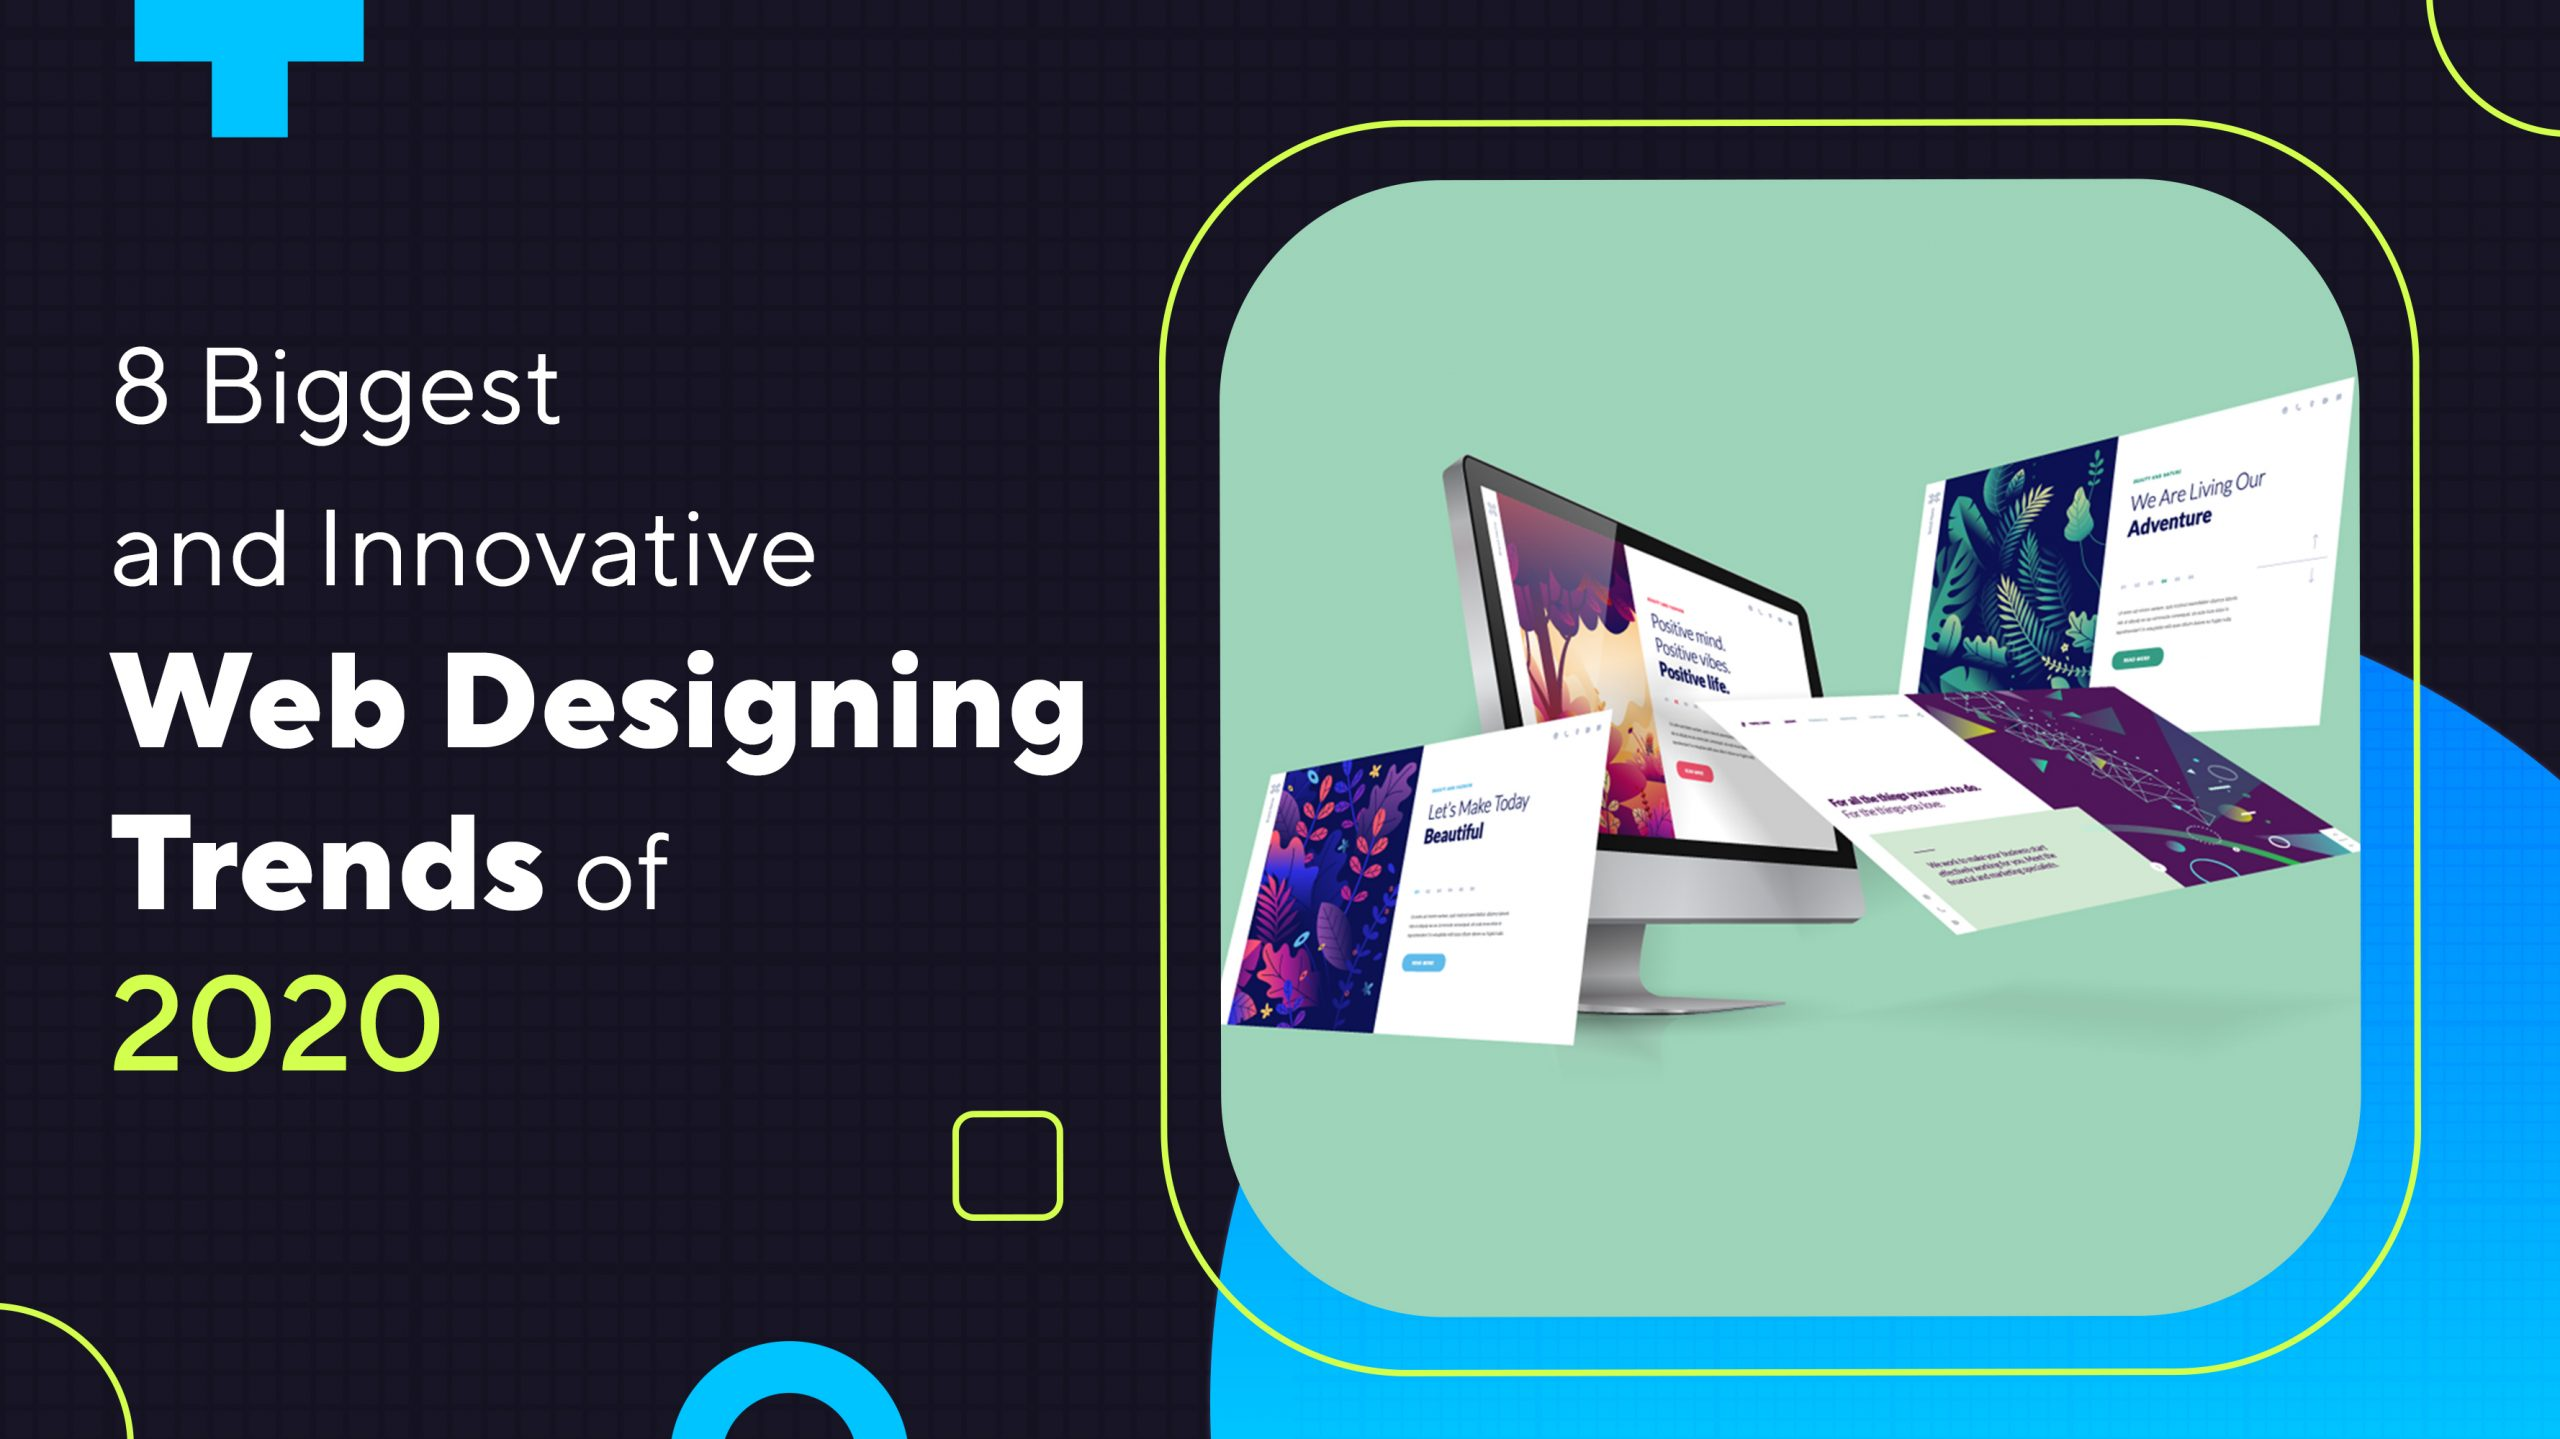 8 Biggest and Innovative Web Designing Trends Of 2020